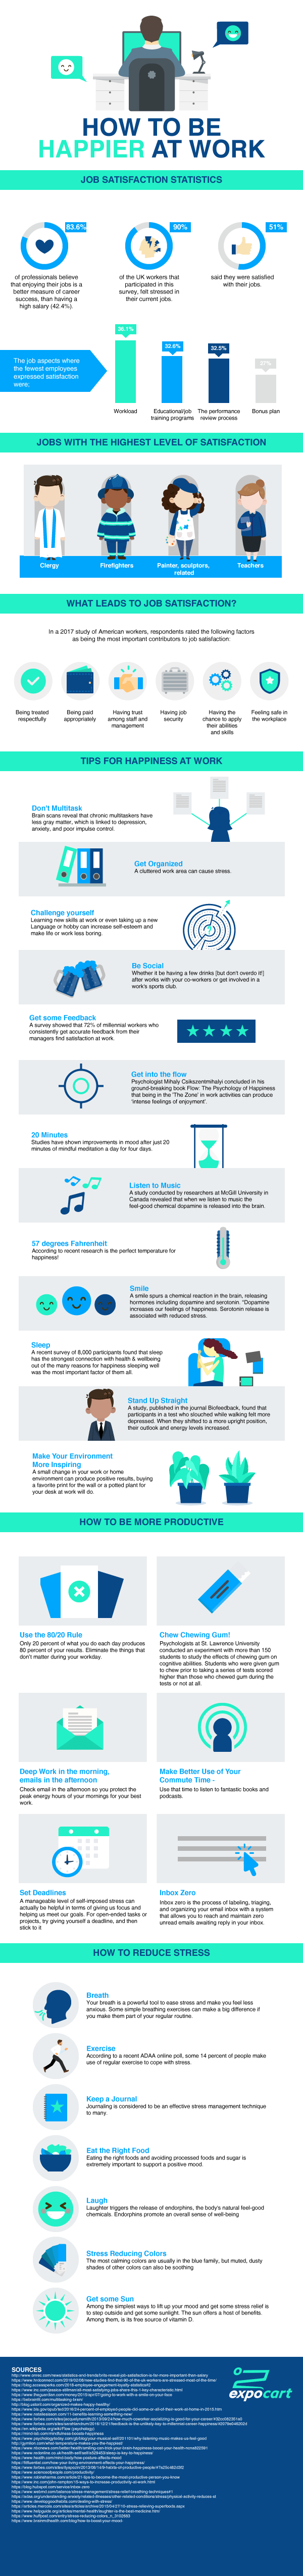 Infographic on How to be Happier at Work